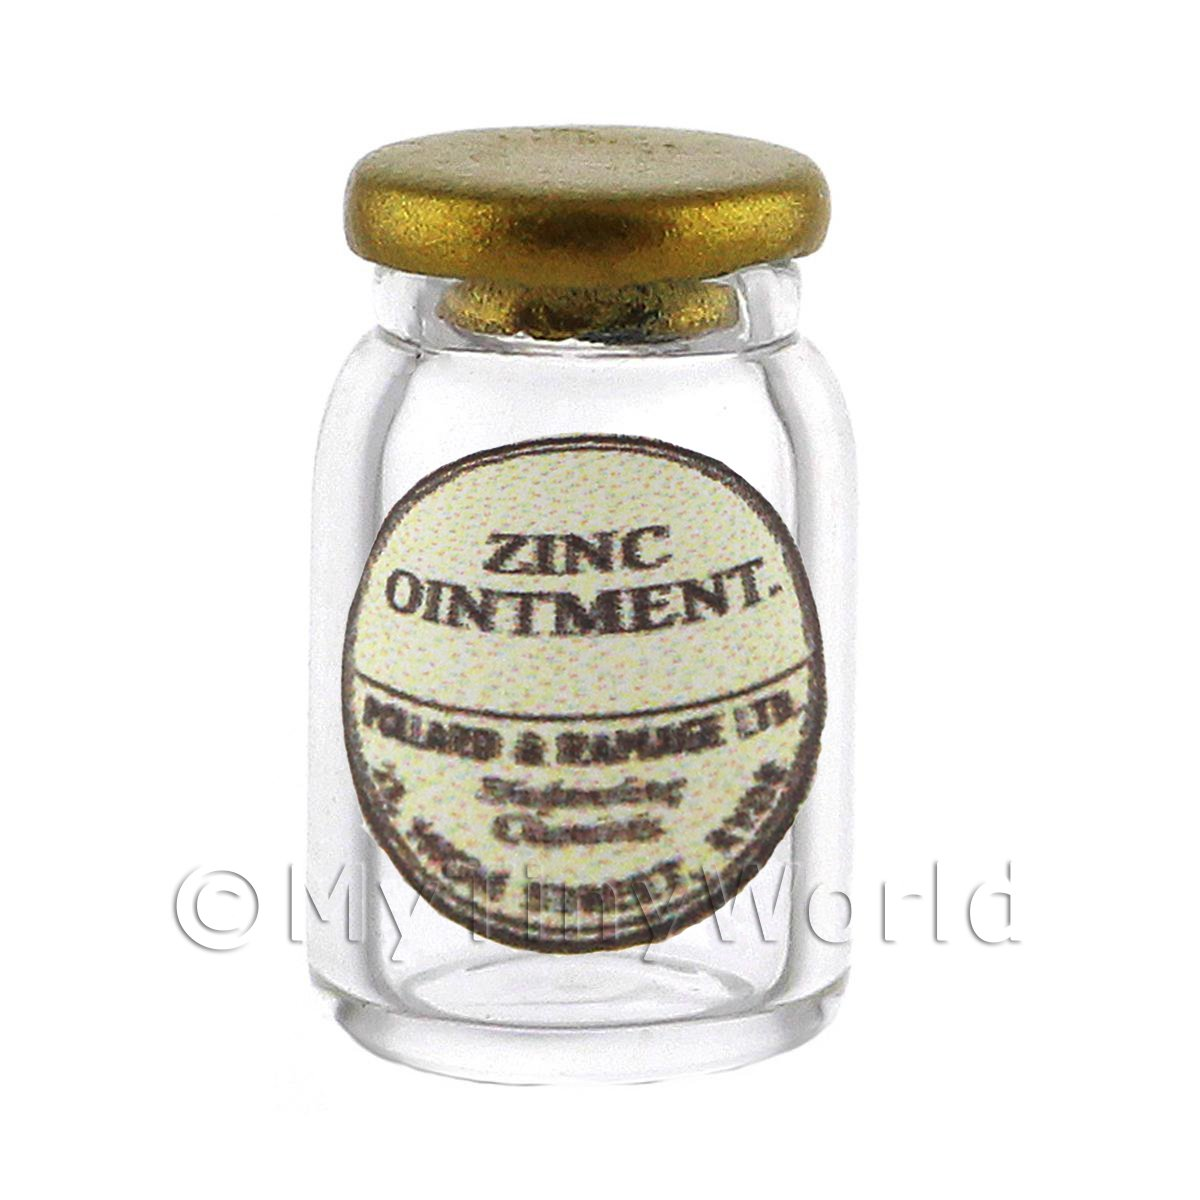 Miniature Zinc Ointment Glass Apothecary Ointment Jar